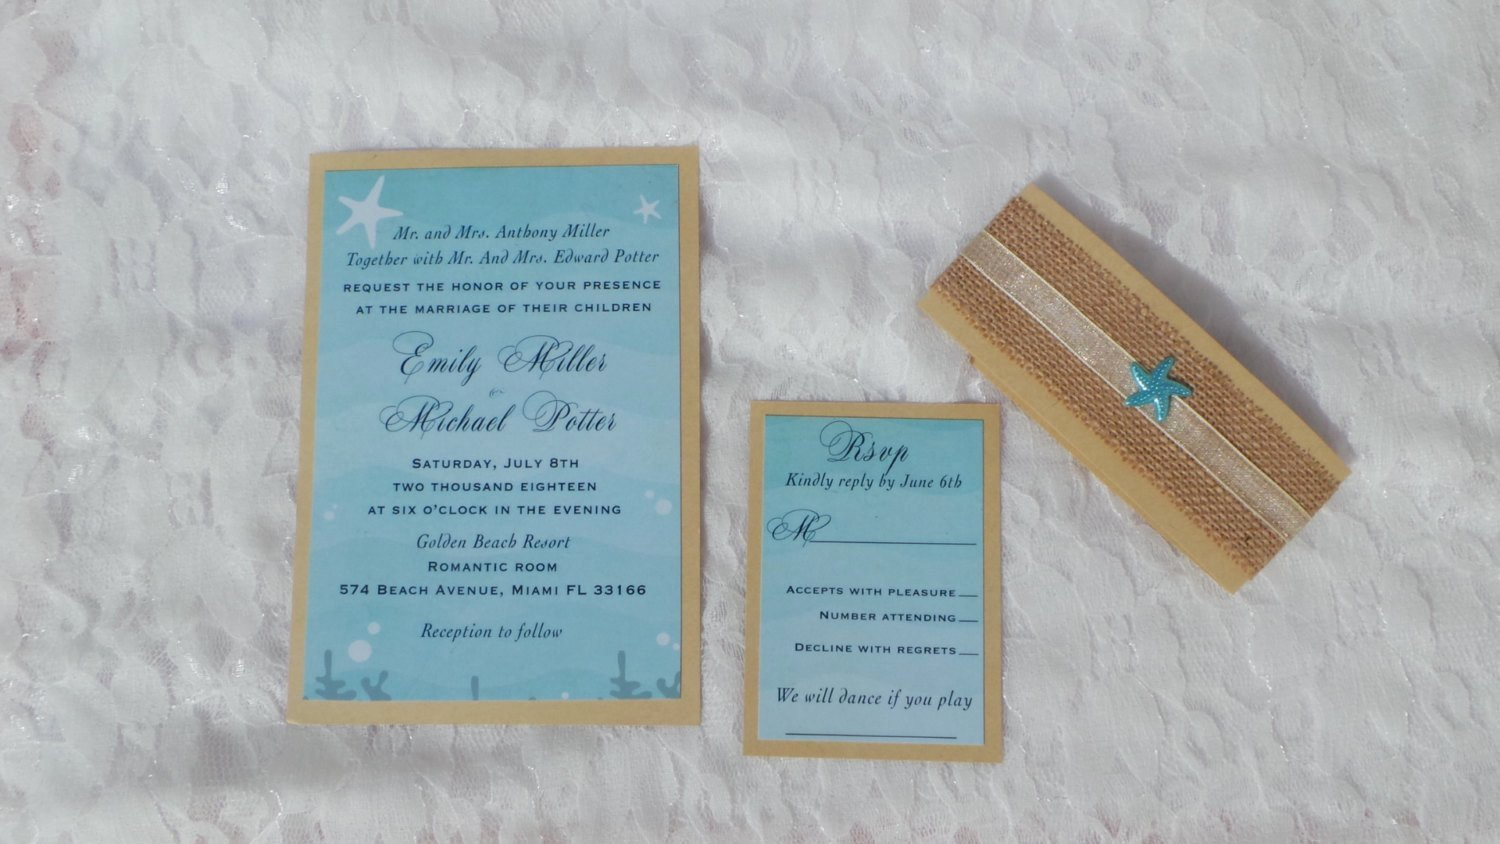 Rustic Beach Wedding Invitations Inspirational 30 Rustic Beach Wedding Invitations Vintage Burlap Set – Pink the Cat